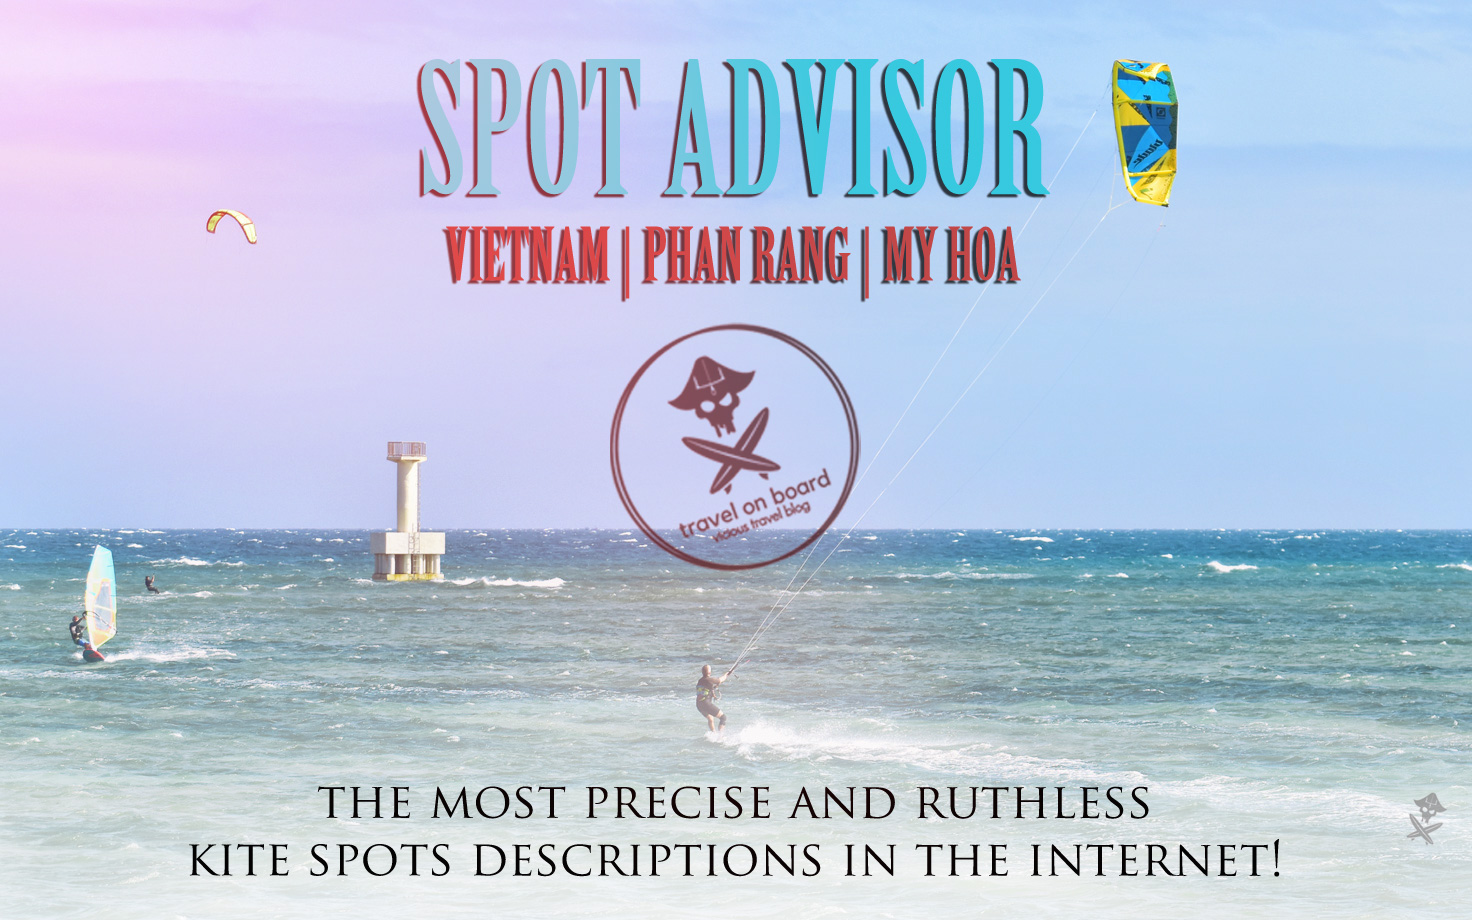 the best kitesurfing spots description vietnam phan rang my hoa lagoon